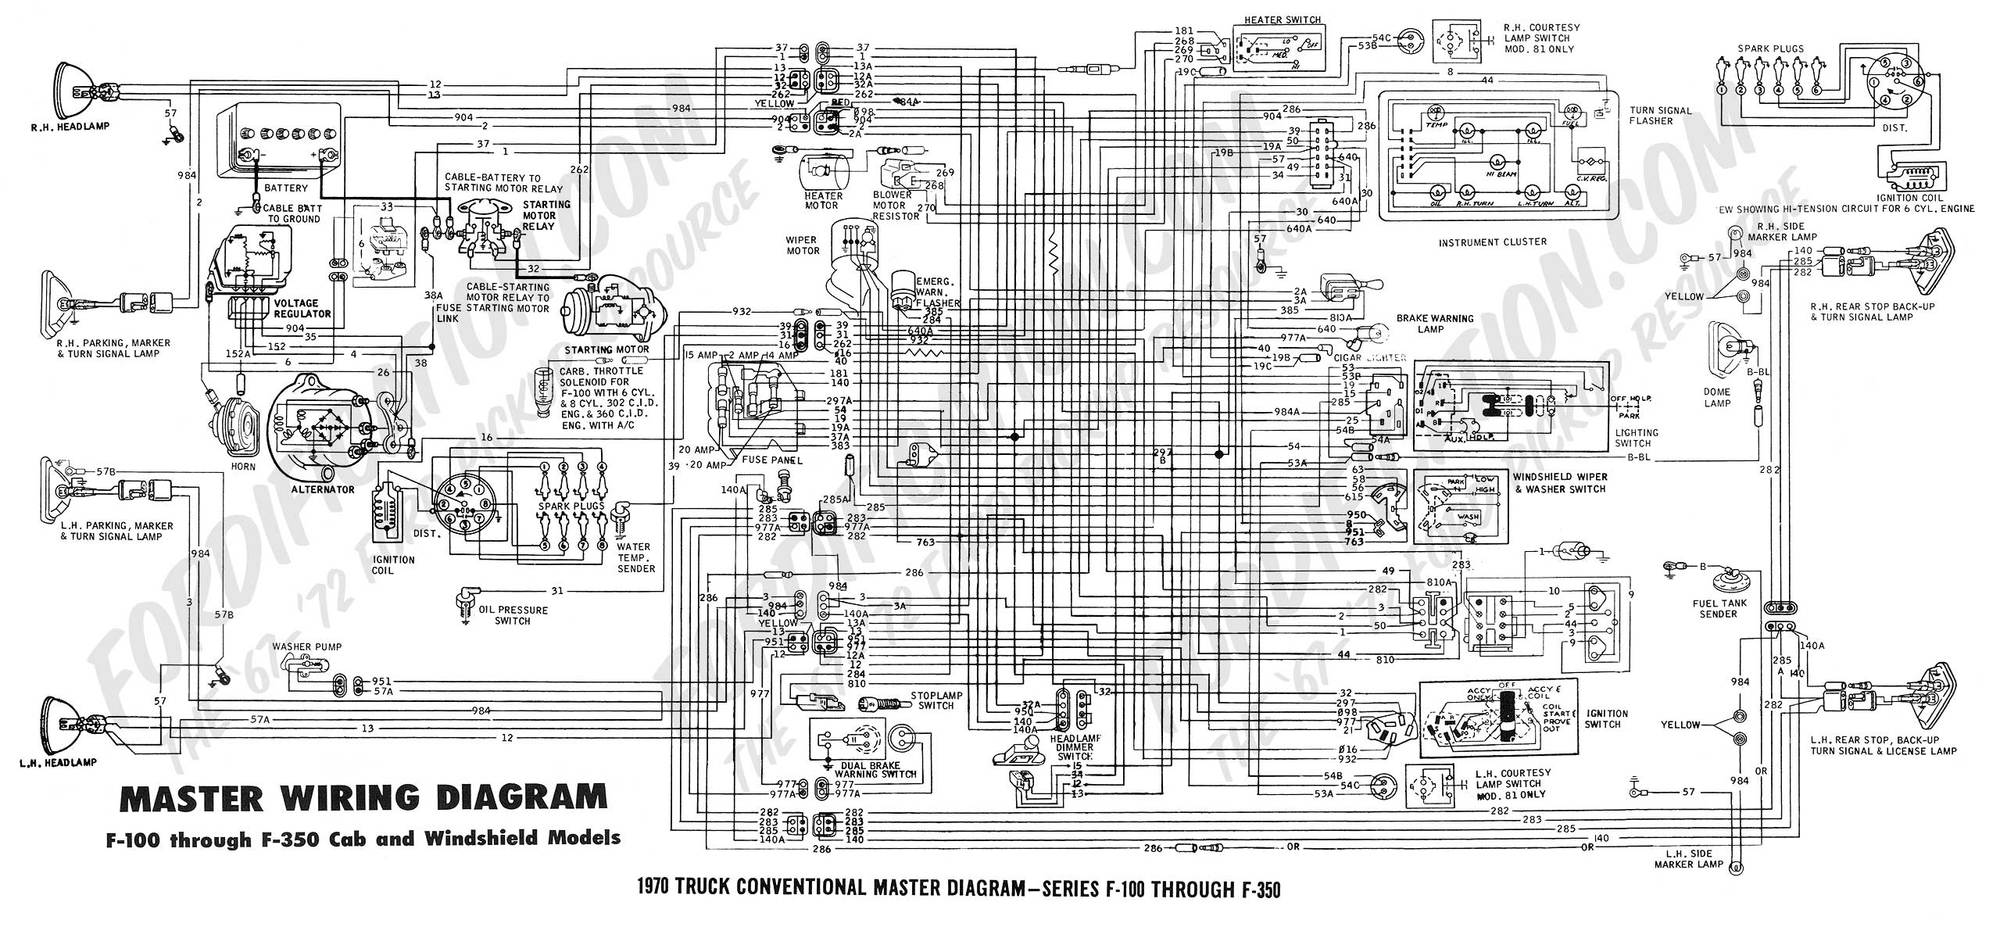 80 wiring_diagram_70_master_77b0650ff5823fc998e119c71f59ee29a8fbe89a reznor heater wiring schematic efcaviation com goodman furnace wiring diagram at alyssarenee.co